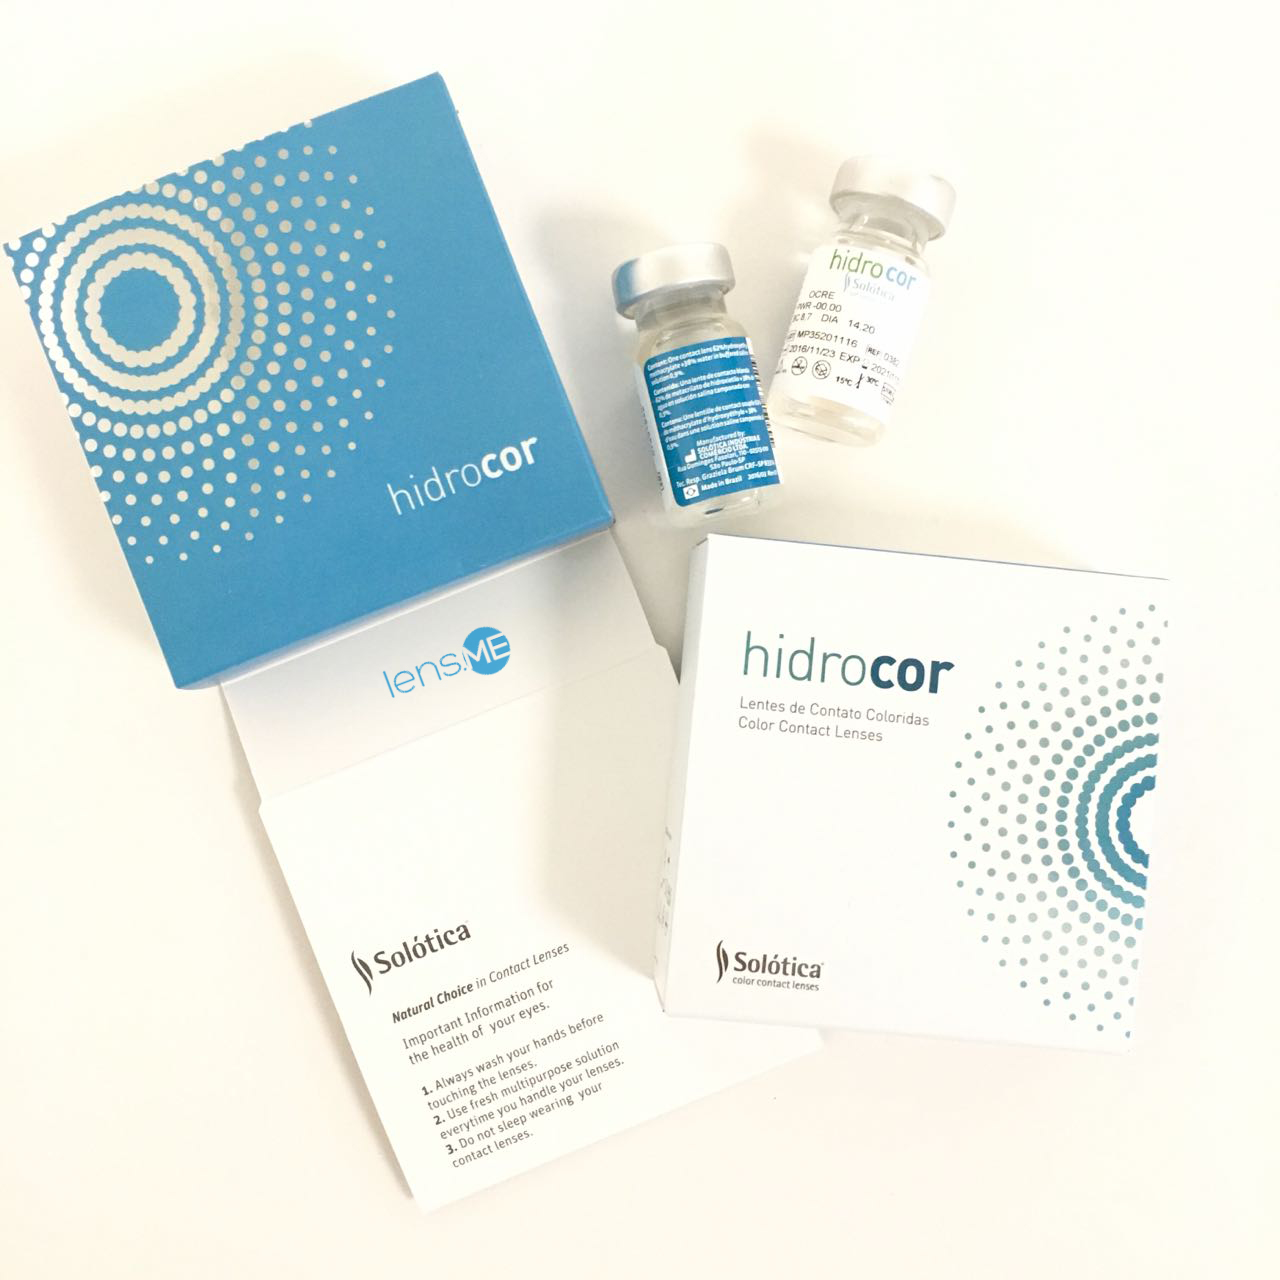 Solotica Hidrocor Contact Lenses Collection From Brand Has Click Here For Non Harmonized Colours No Limbal Ring With Subtle Colors Giving You A Natural Looking Result Double The Photo To See And Learn More